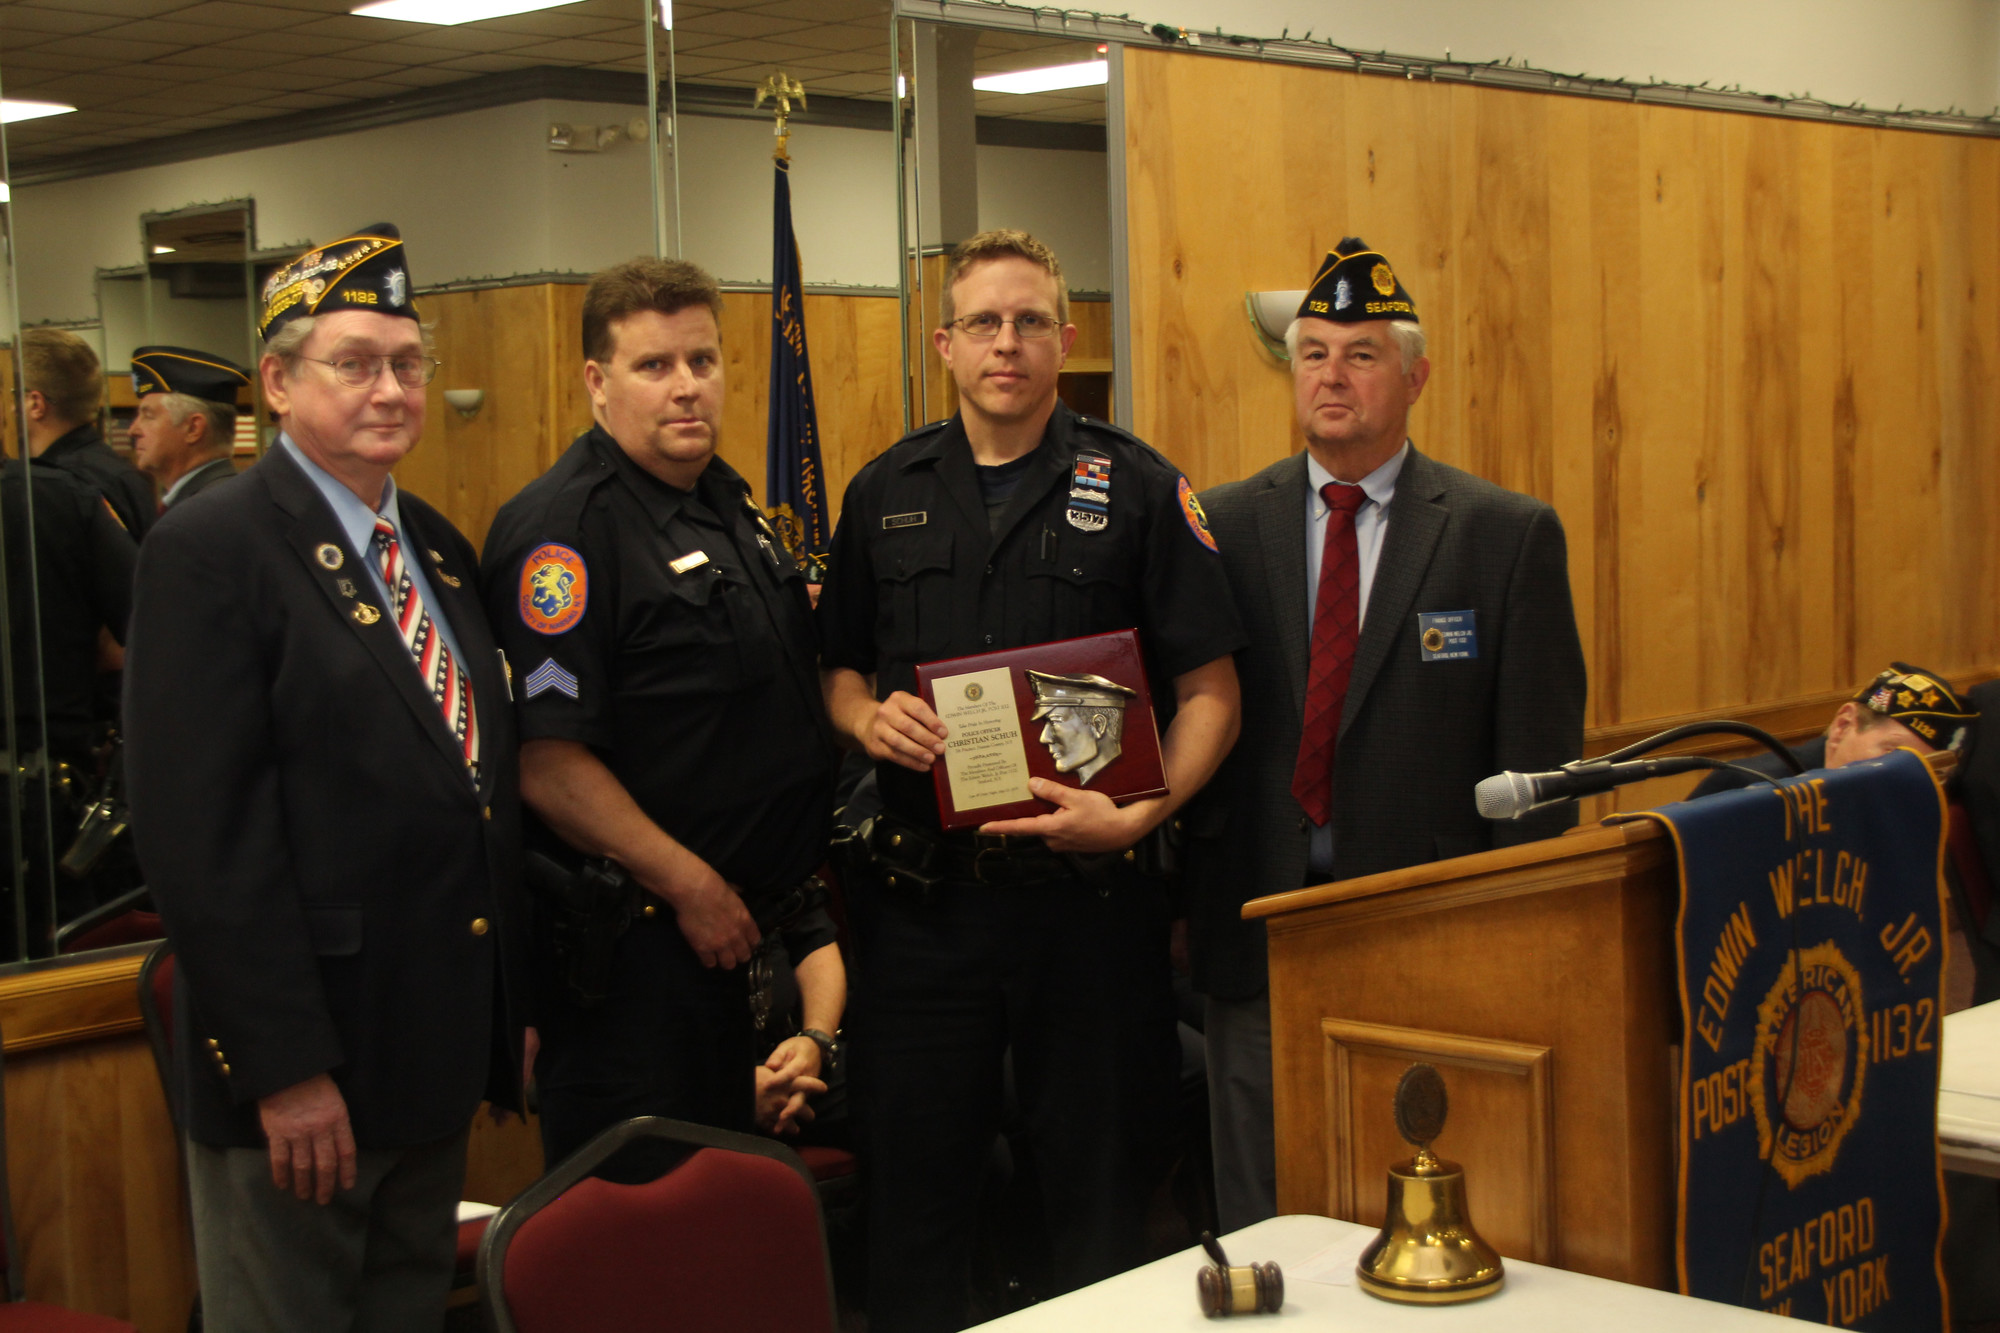 Officer Christian Schuh, of the 7th Precinct, was honored with the Legion Law and Order Award from American Legion Edwin Welch Post 1132 finance officer William Hoehn, left, and Commander Harms, right. Also joining them was Sgt. Erdmann.